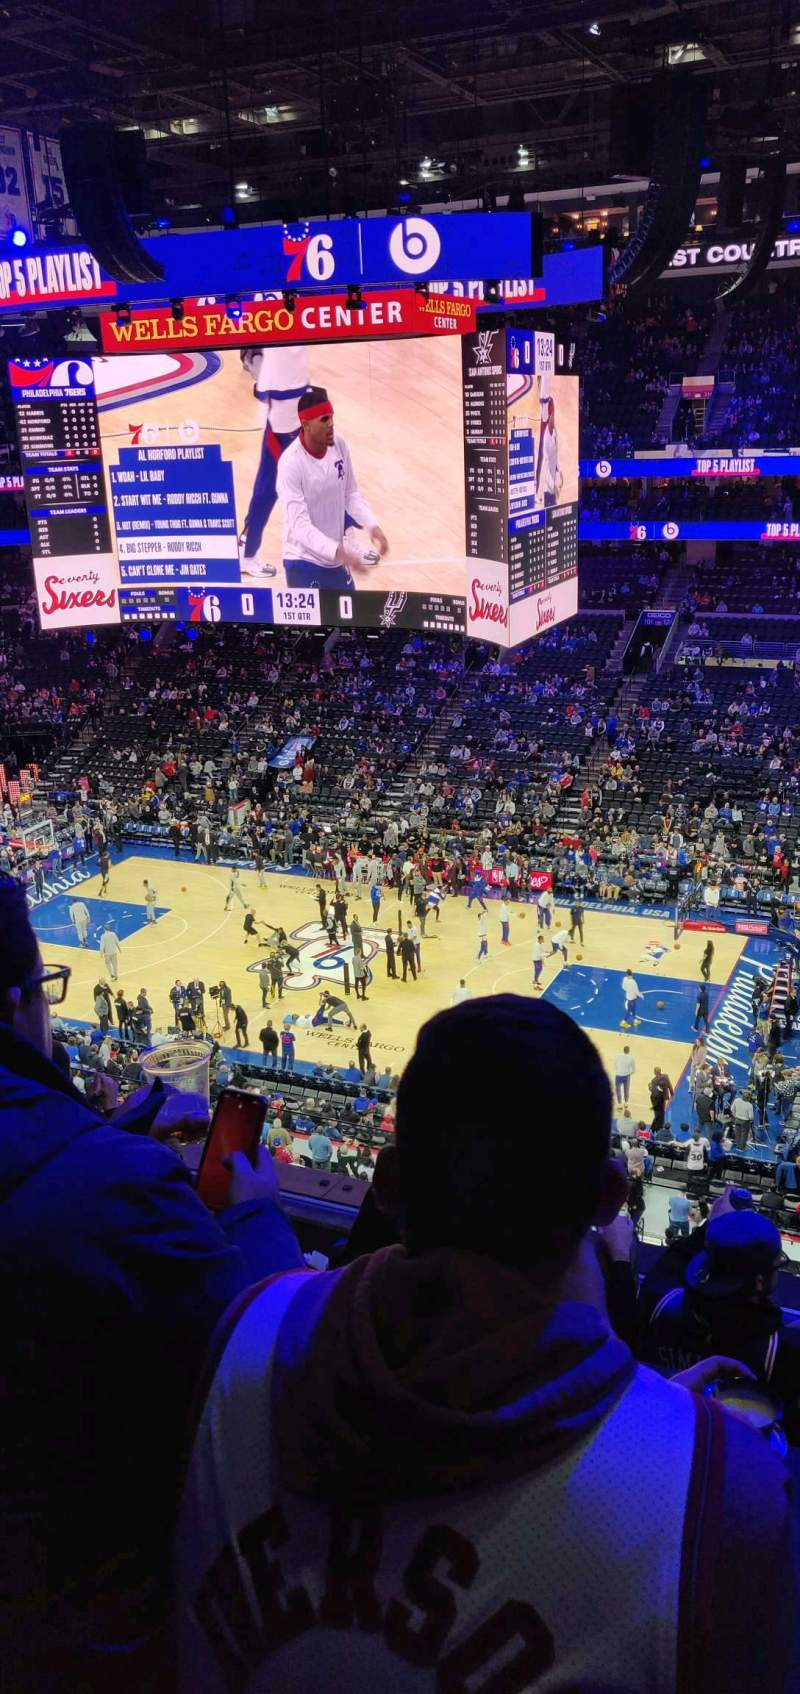 Seating view for Wells Fargo Center Section 215 Row 5 Seat 9